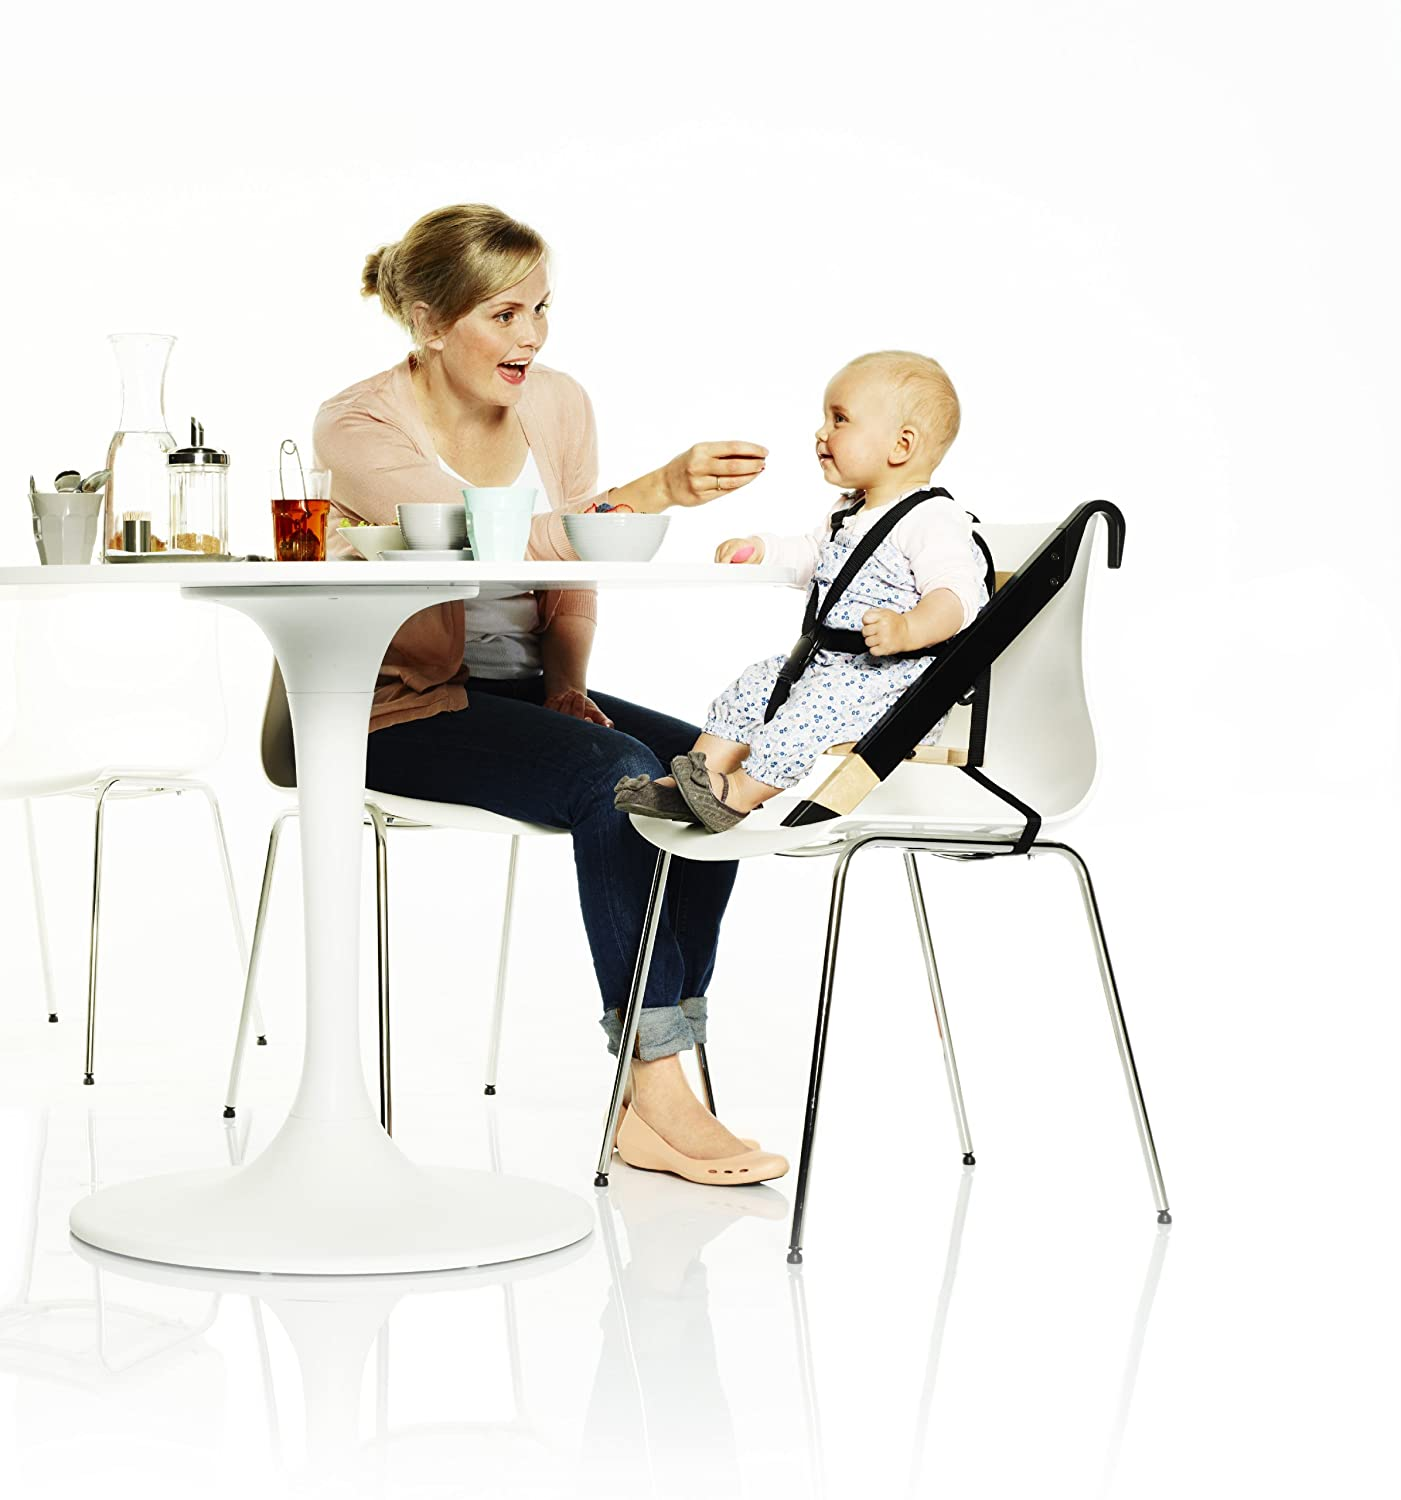 STOKKE Handy Sit chair Amazon Baby